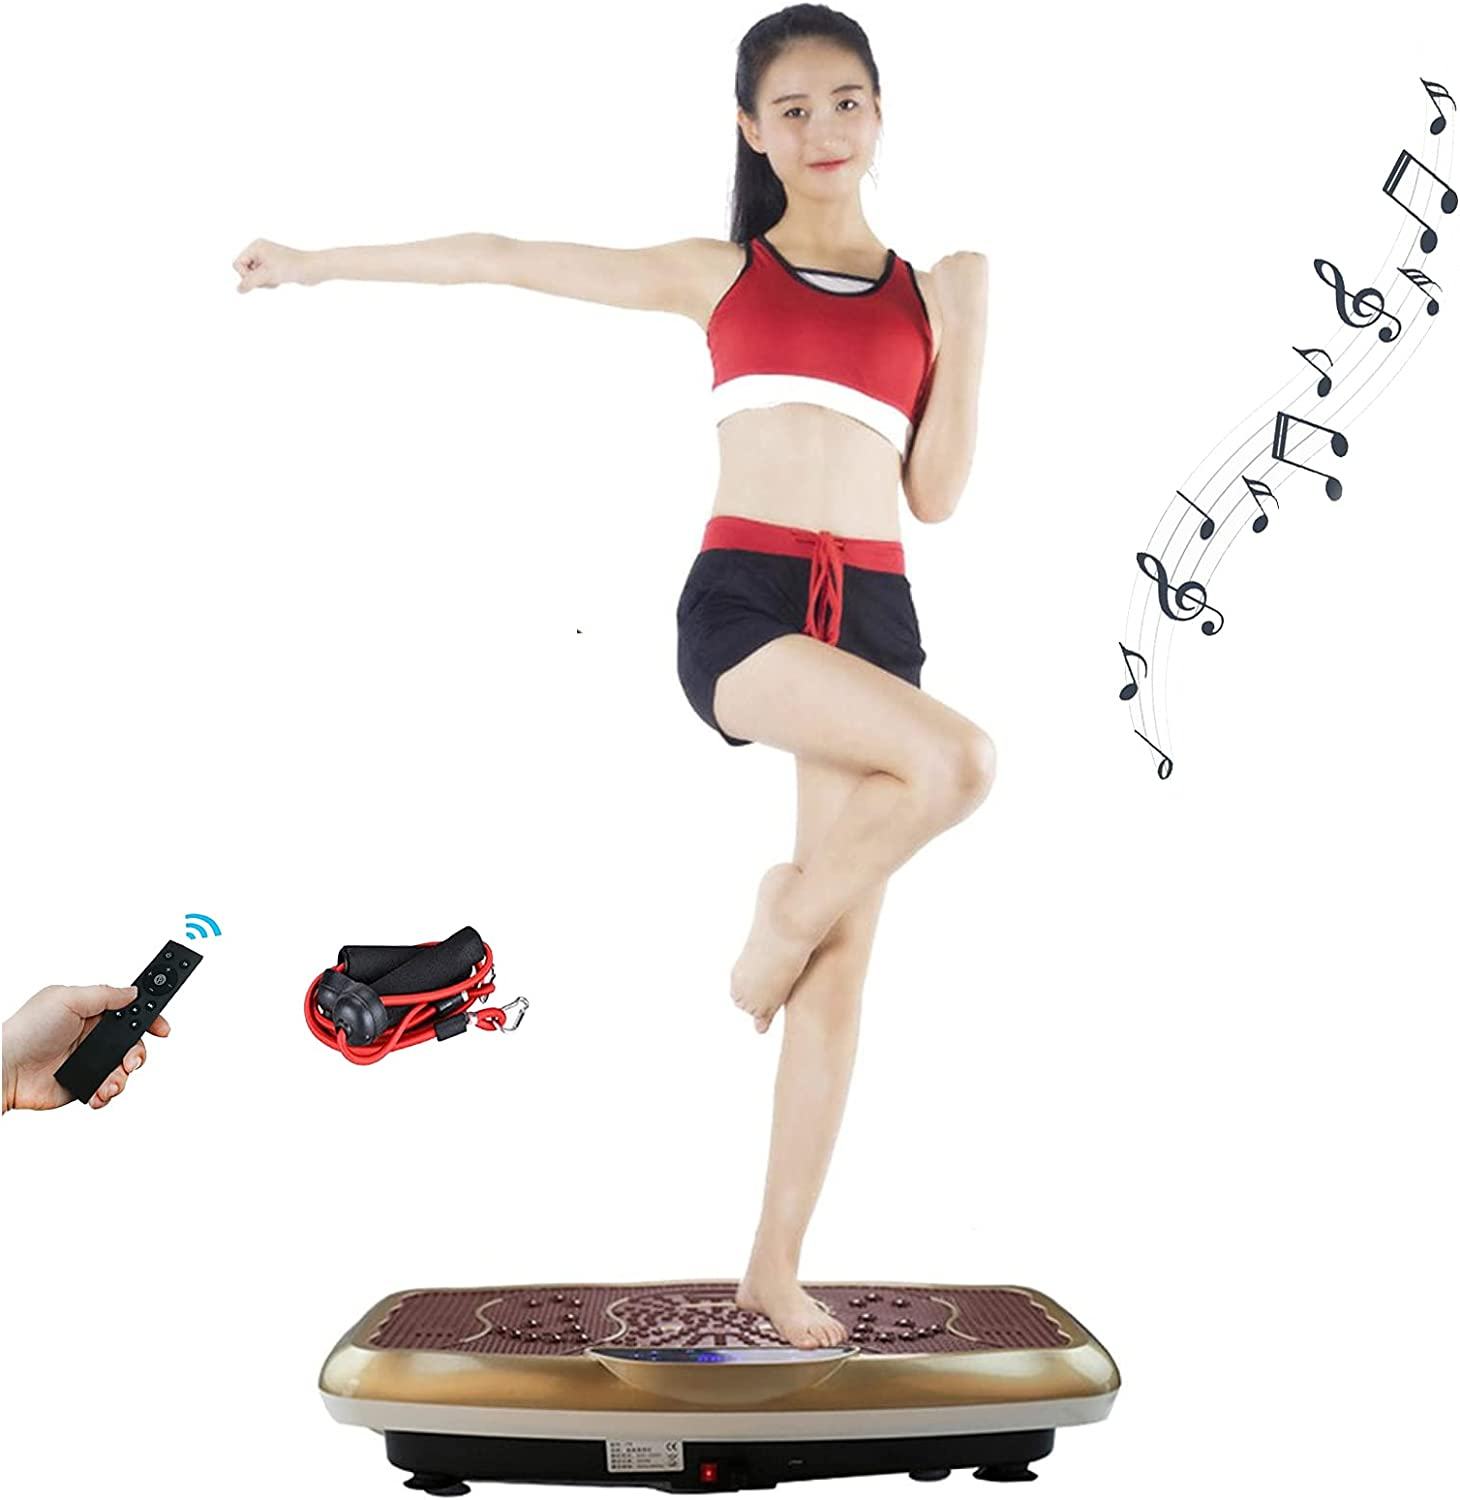 JHDOSD Vibration Plate Exercise Machine Workout Vib - Max 88% OFF Body Factory outlet Whole